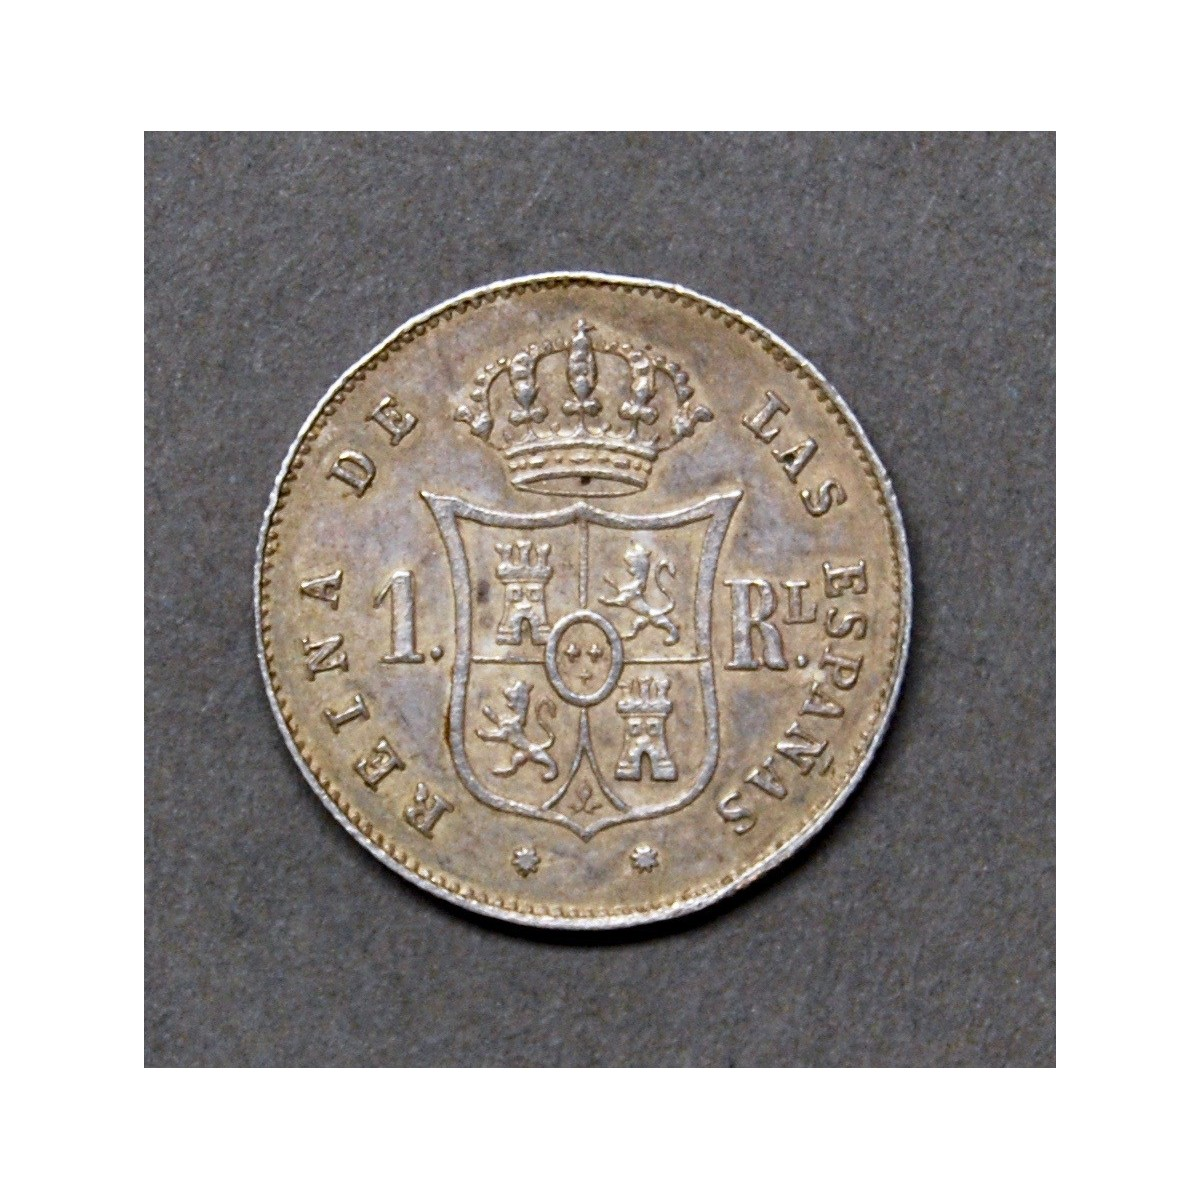 1 real of silver 1853, mint of Barcelona